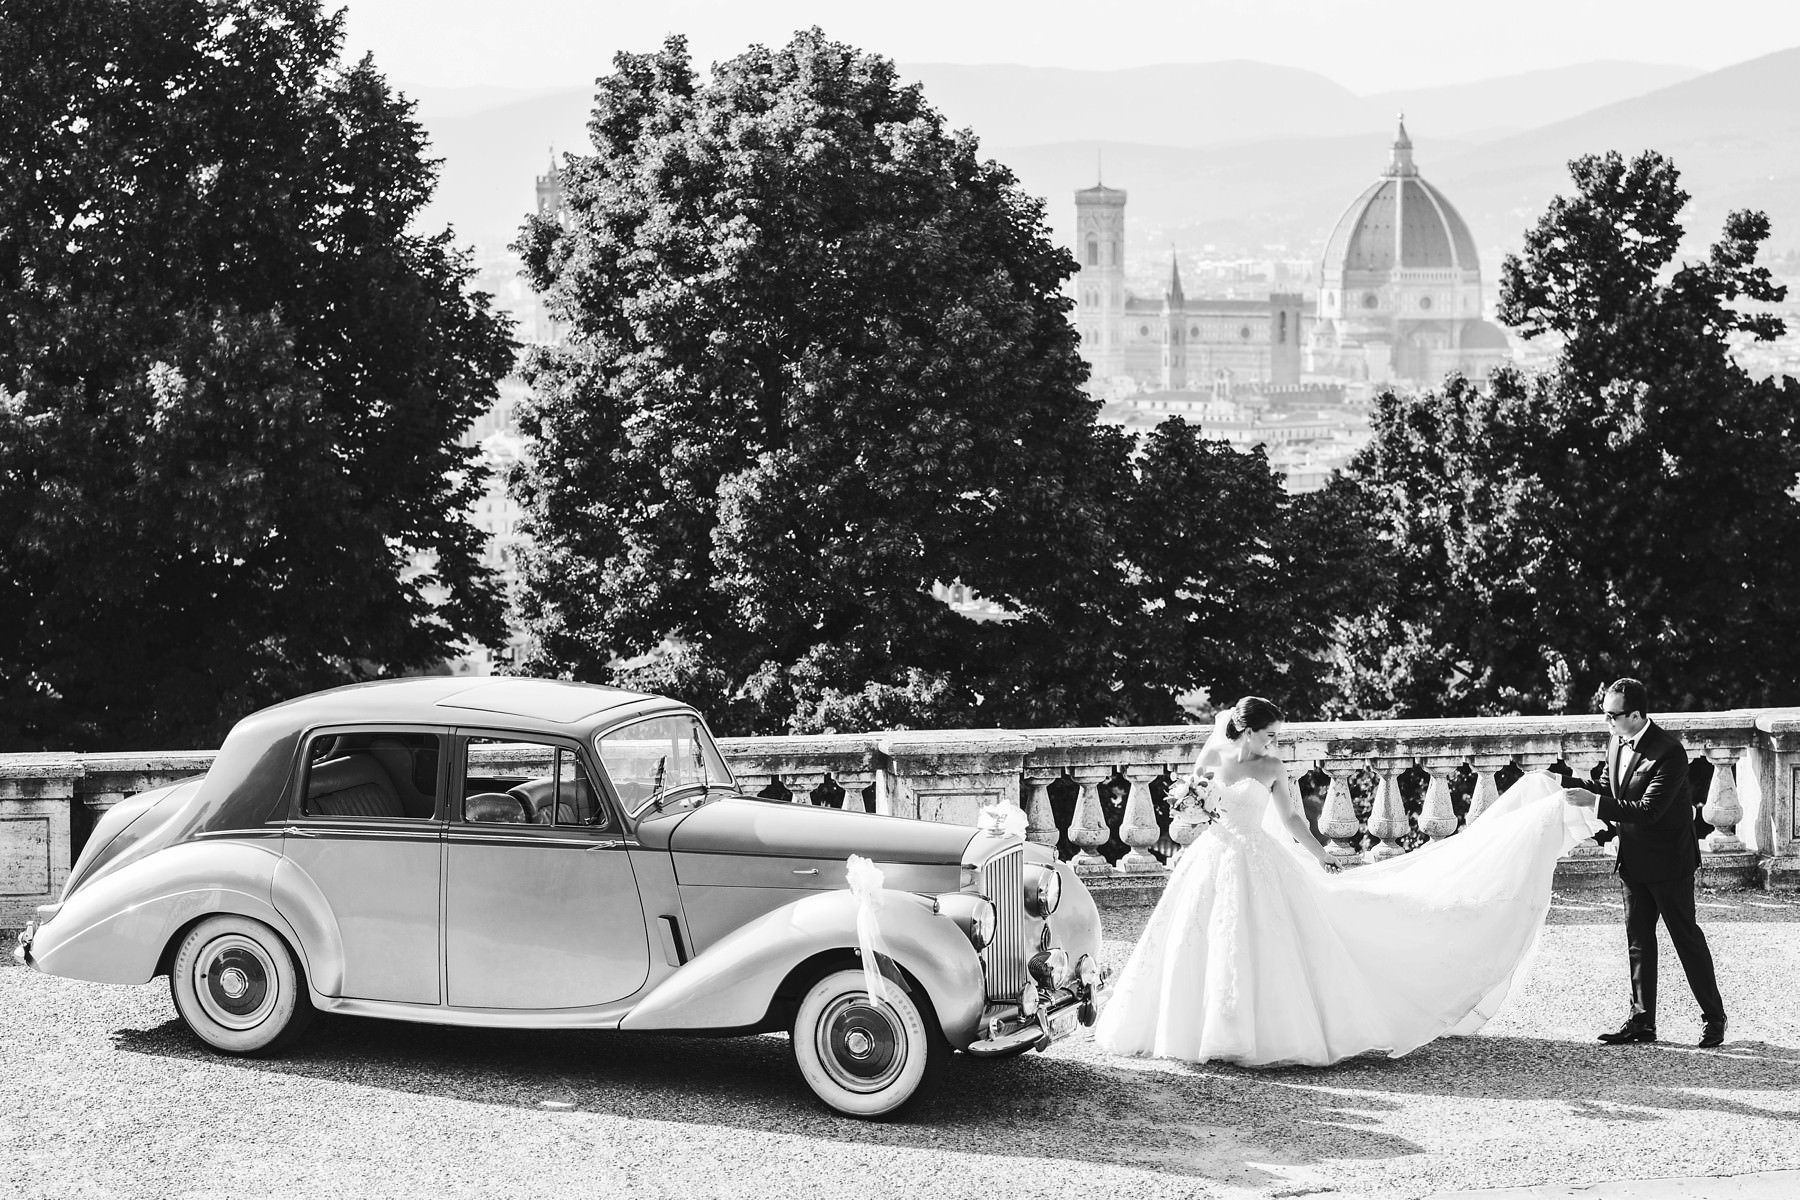 A destination wedding in Italy is a great way to make a special day even more unforgettable. Get inspired and take the extra step: your precious love deserves to be celebrated properly!